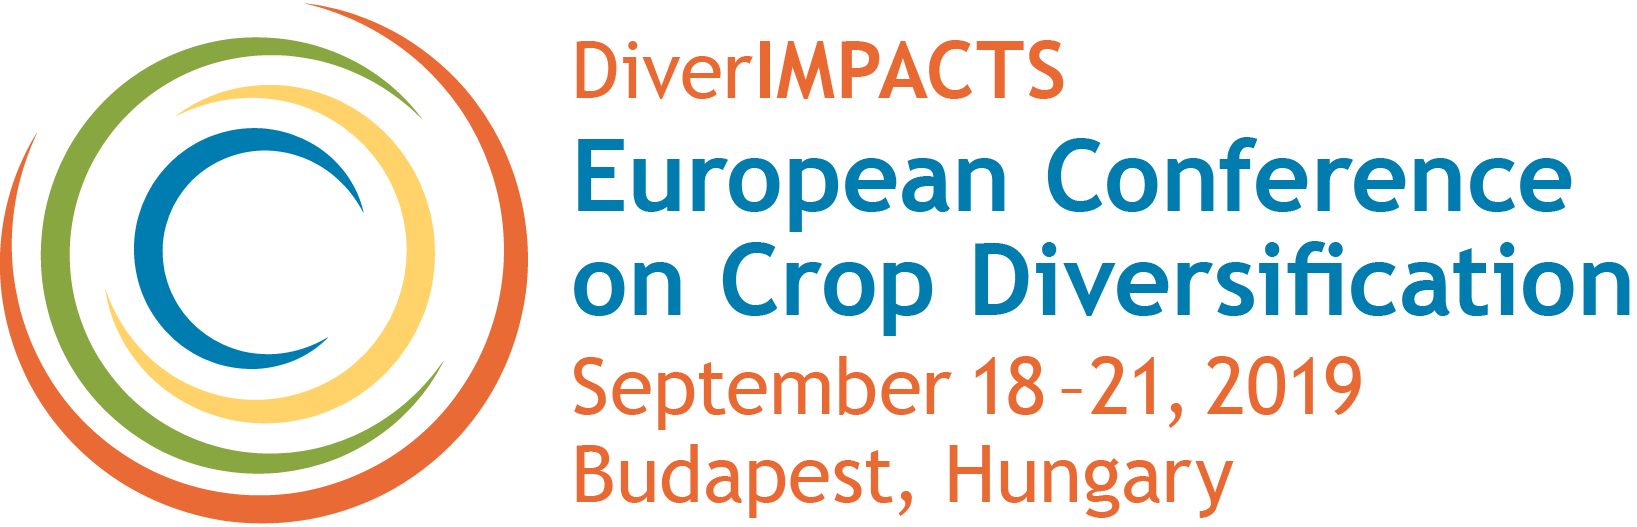 European Conference on Crop Diversification